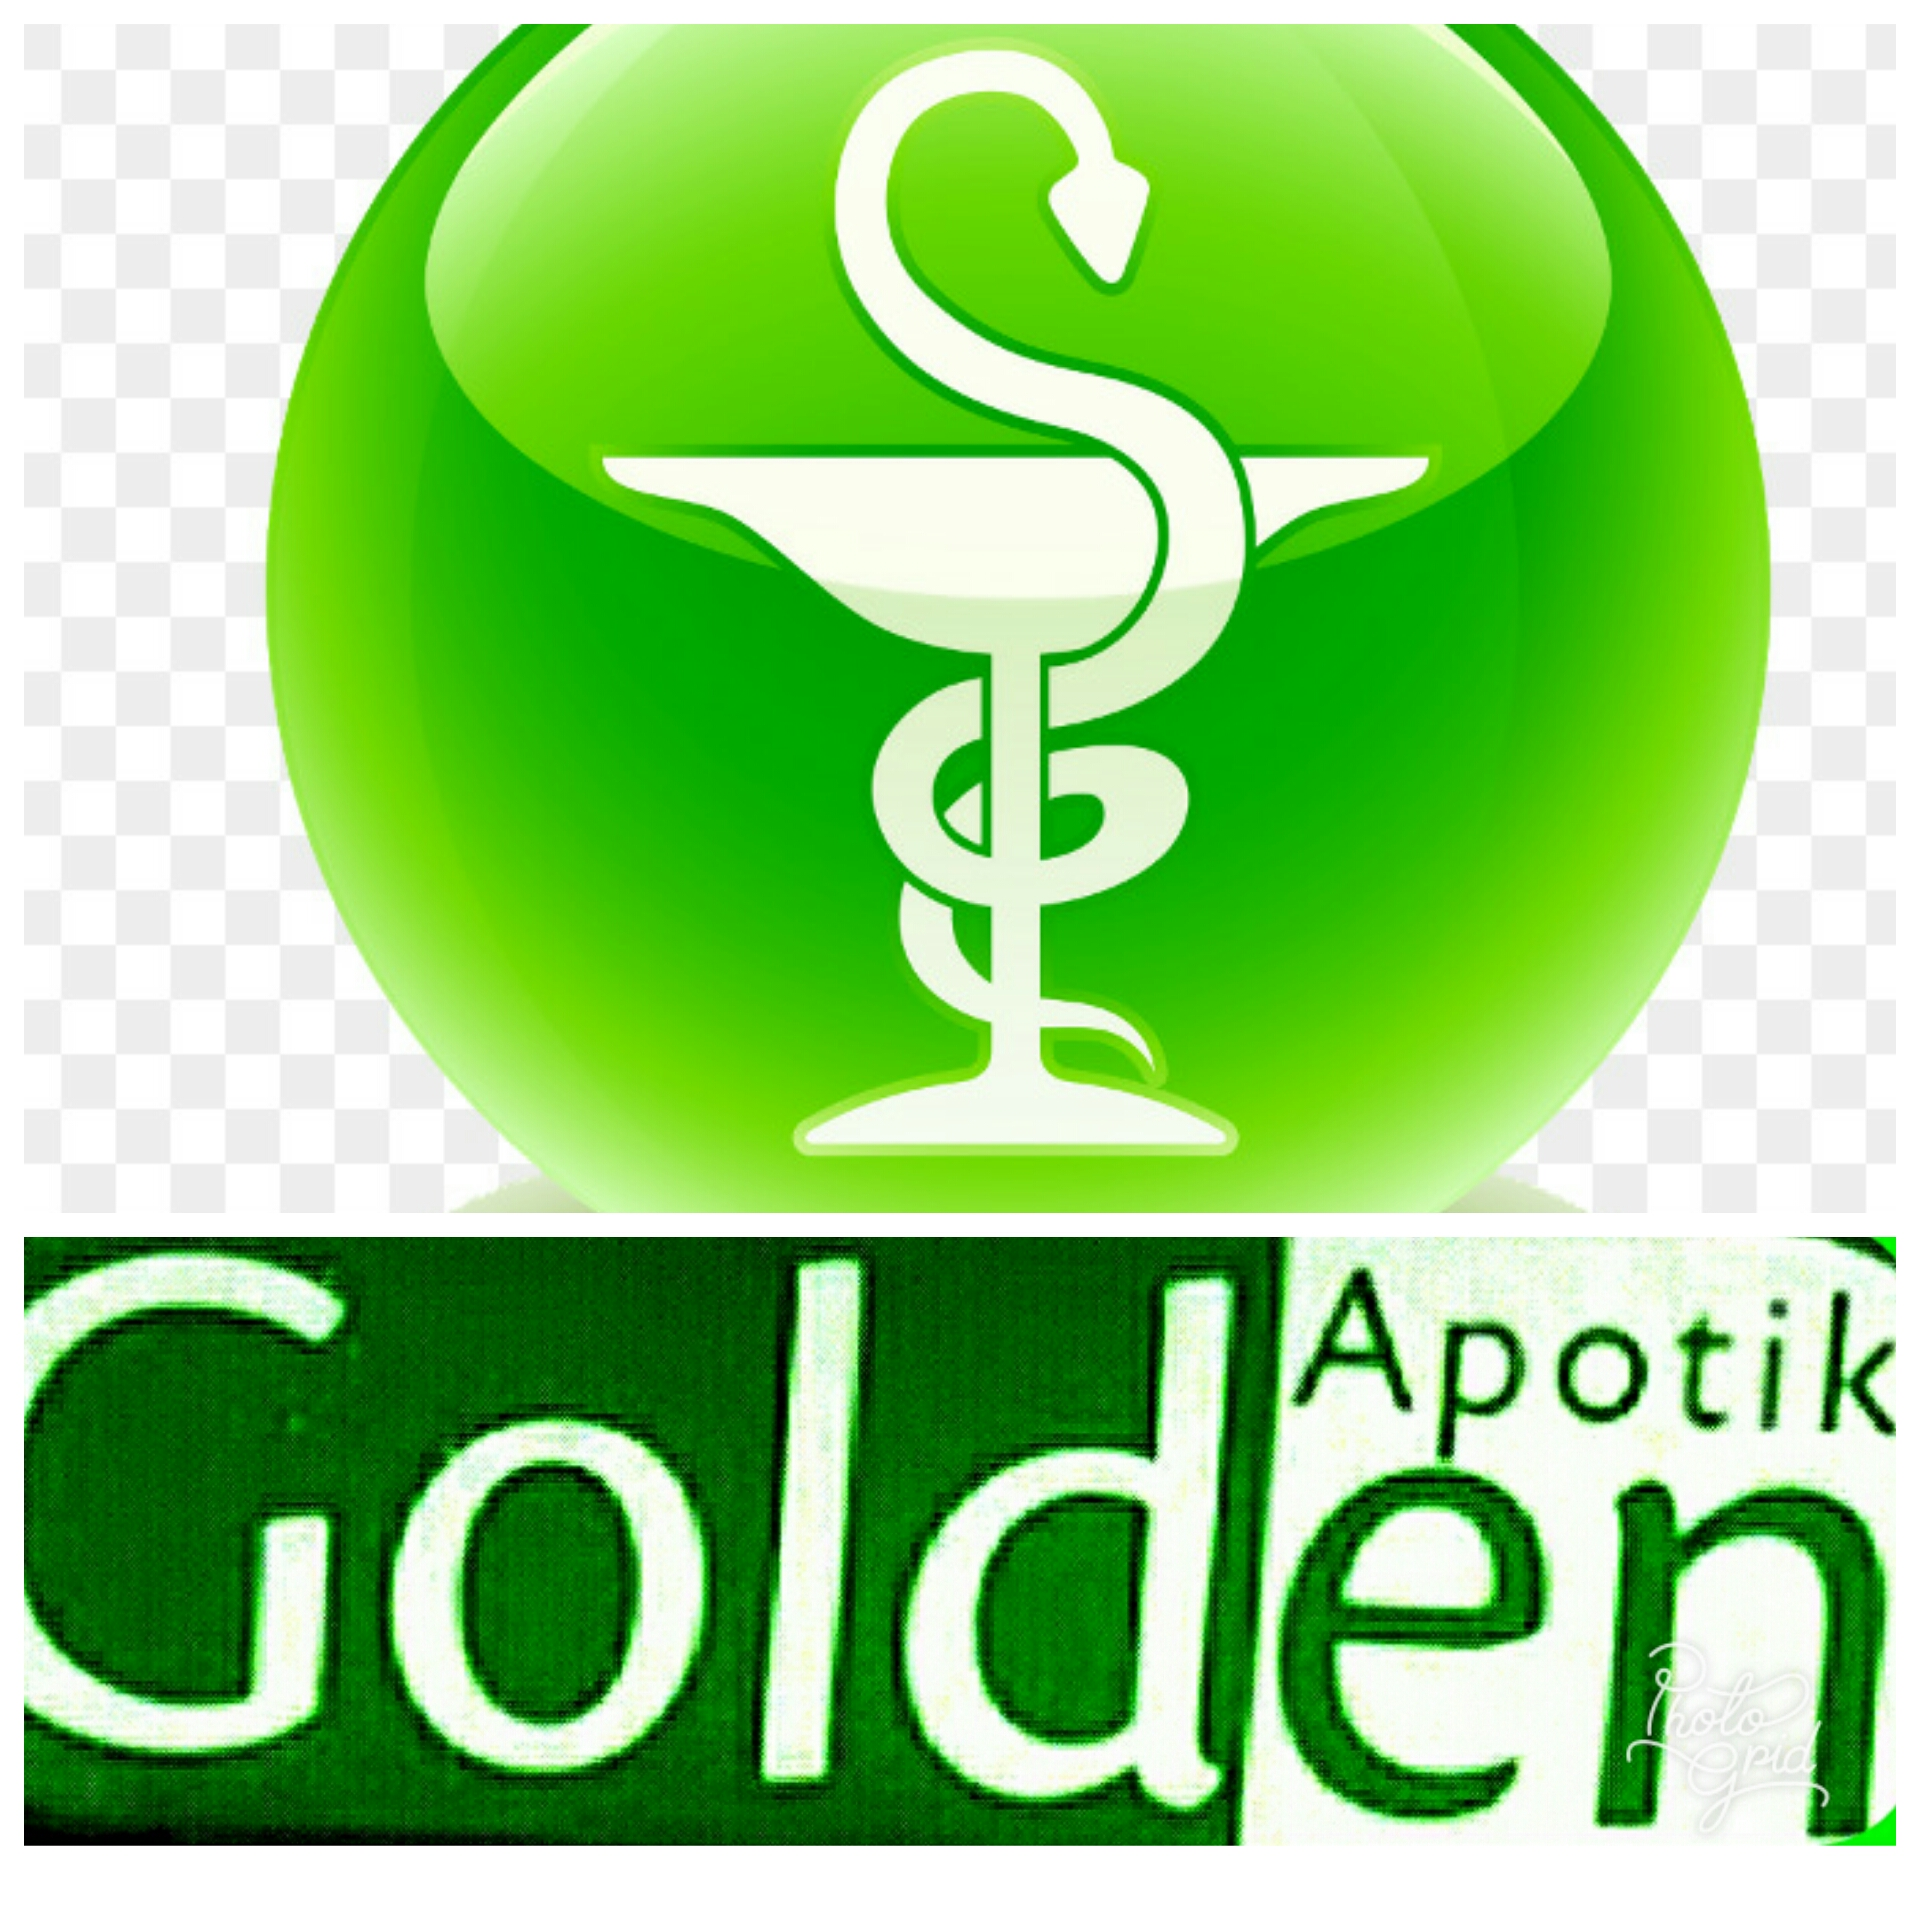 Apotek Golden